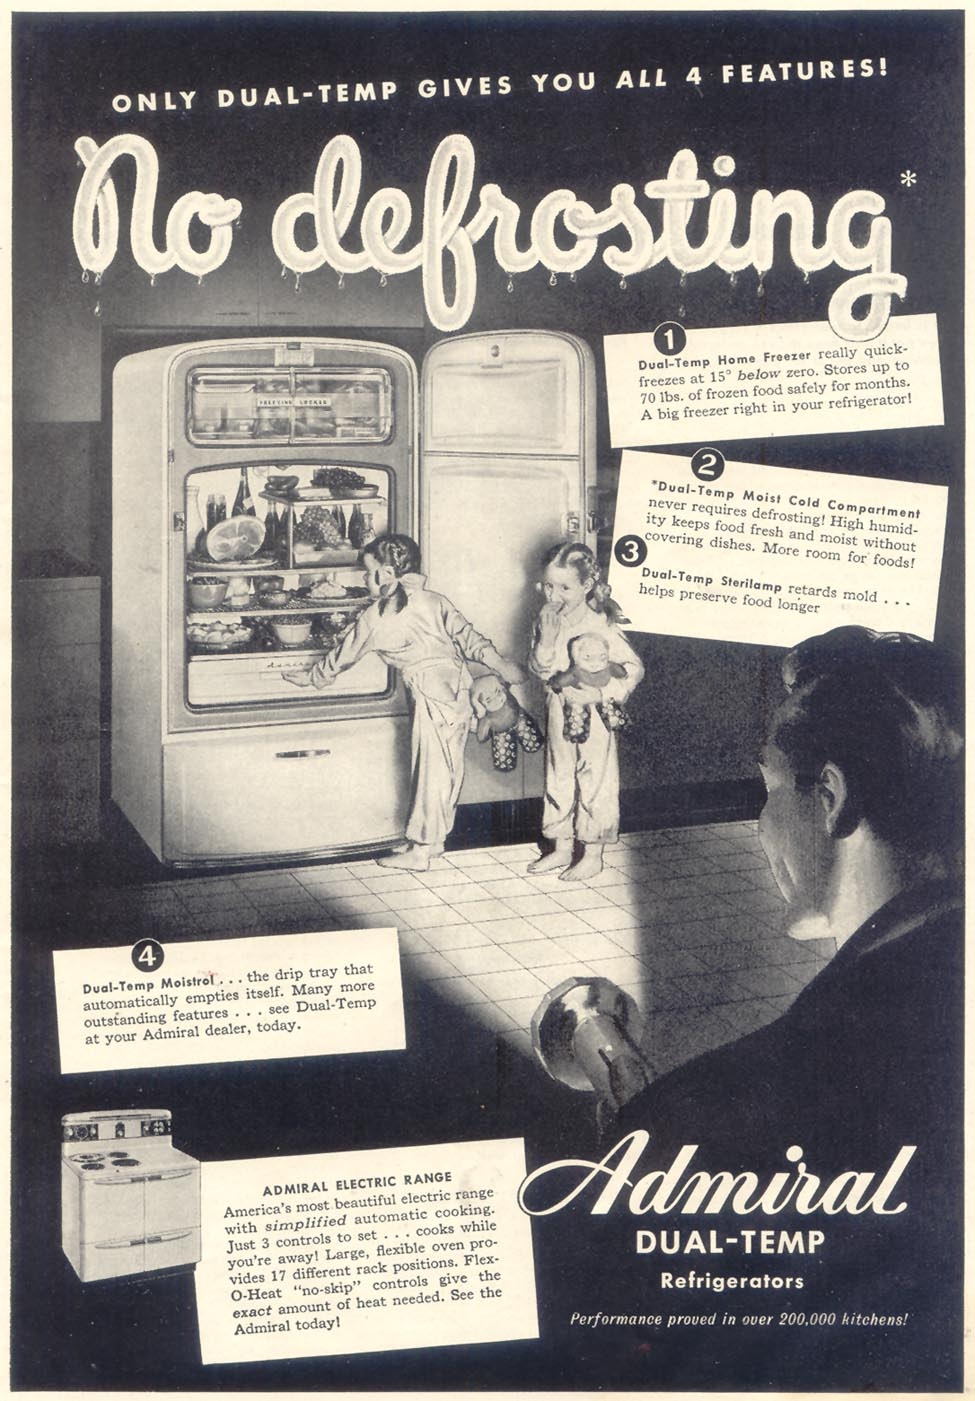 ADMIRAL DUAL-TEMP REFRIGERATORS GOOD HOUSEKEEPING 07/01/1948 p. 17